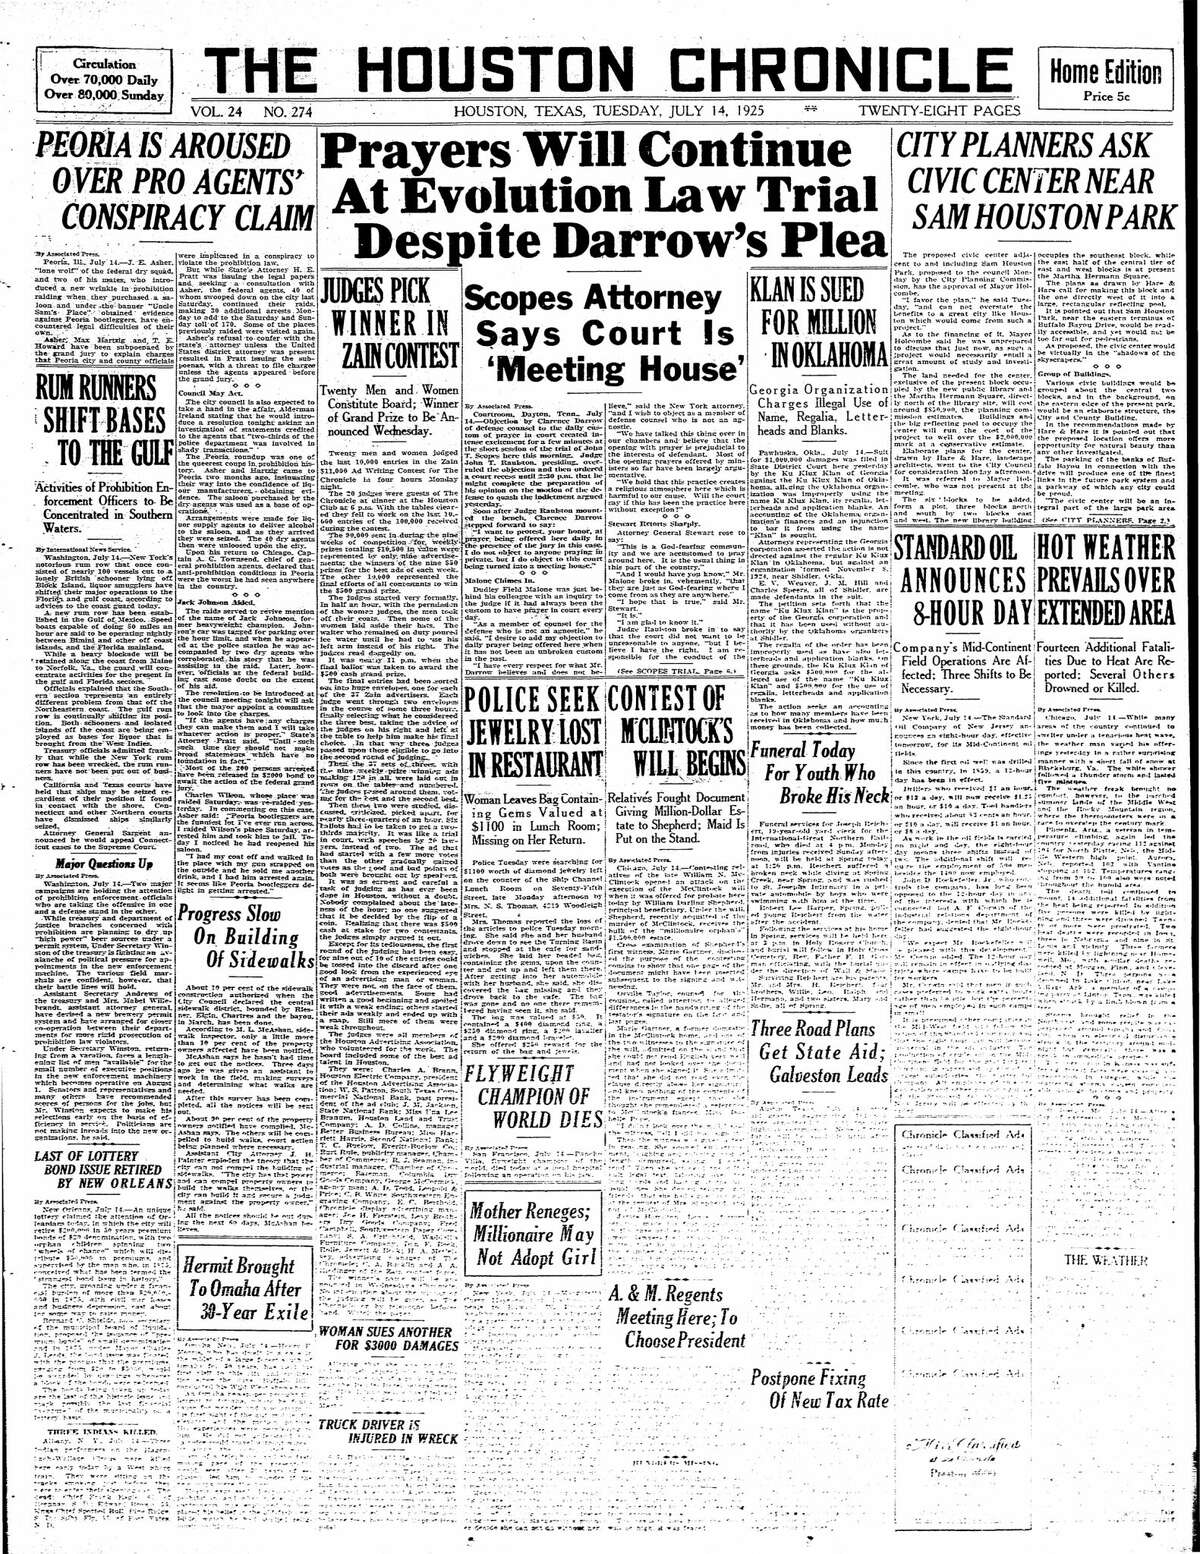 Houston Chronicle front page from July 14, 1925.